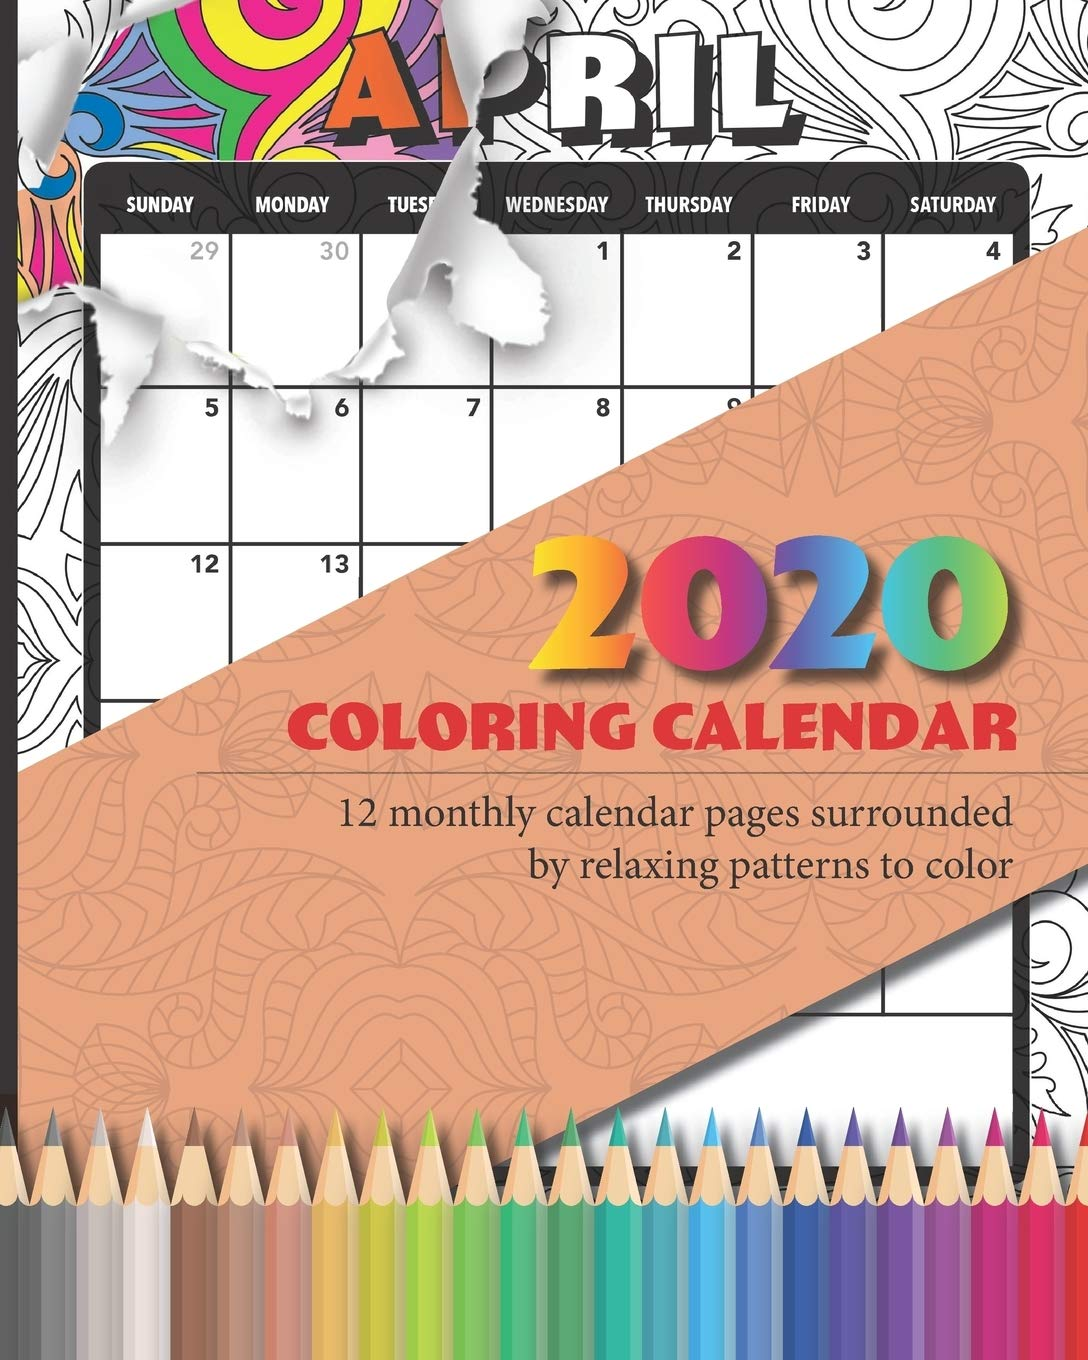 - 2020 Coloring Calendar: 12 Monthly Calendar Pages Surrounded By